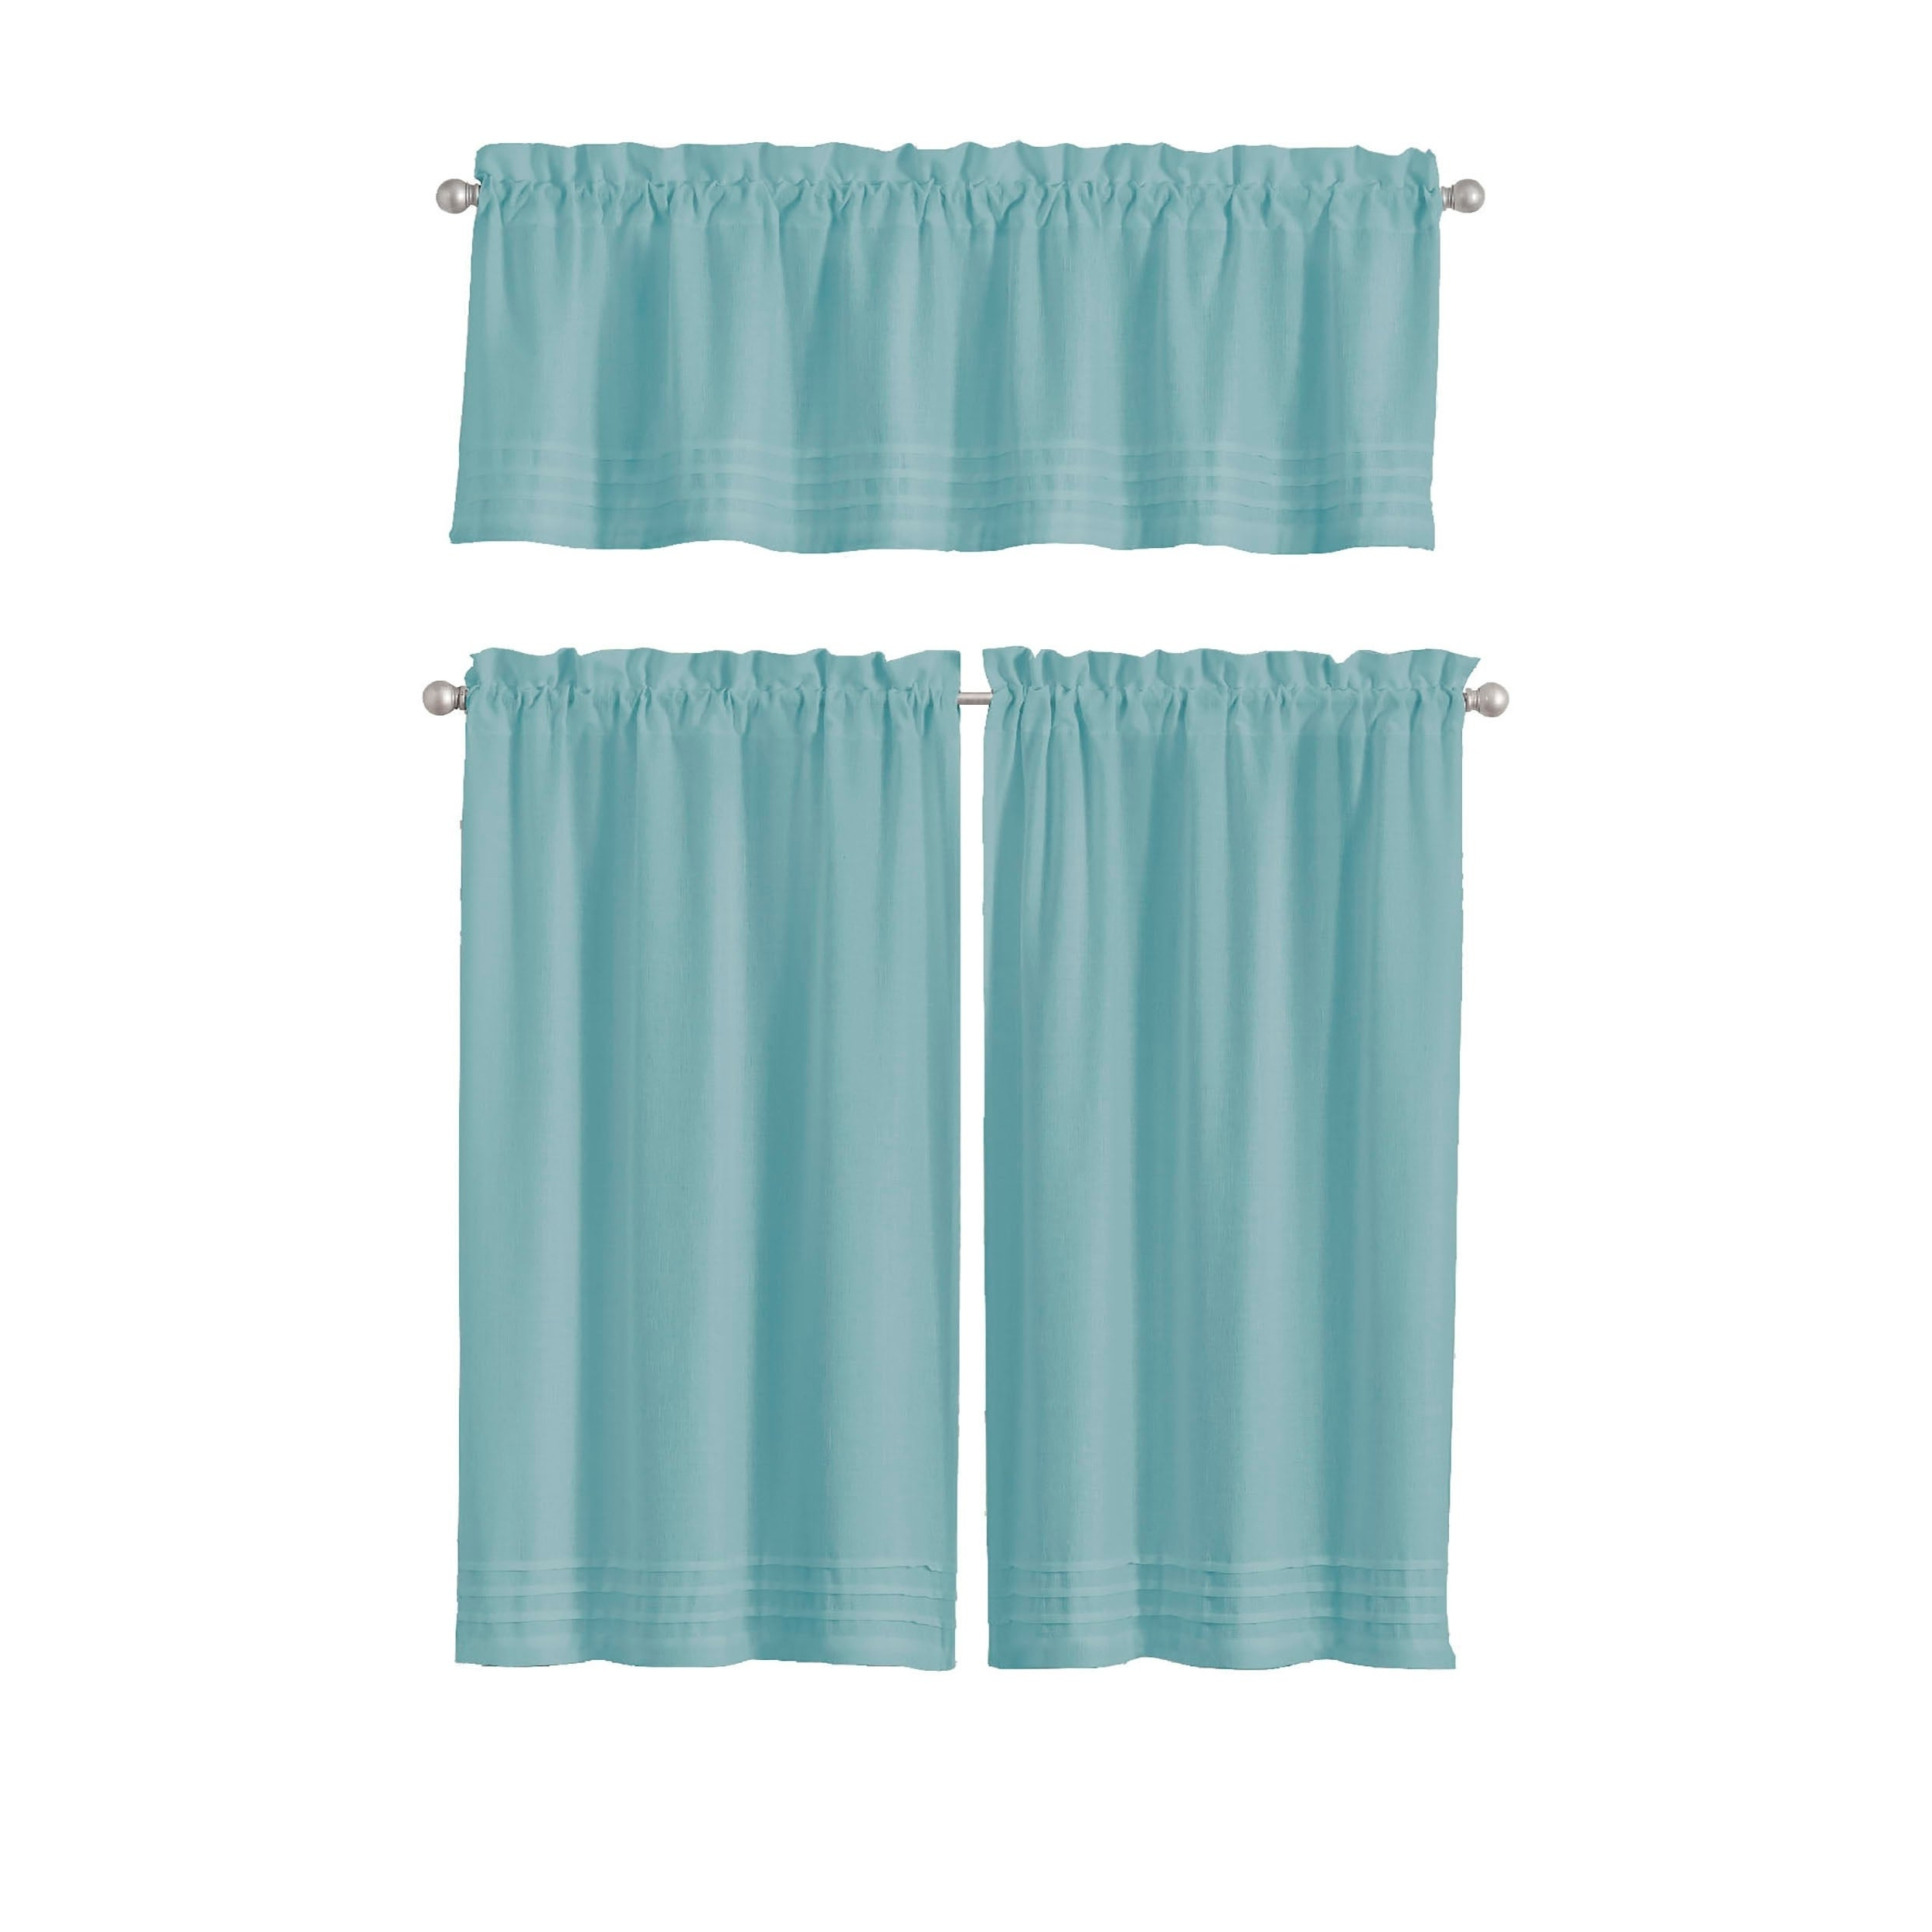 2020 Vue Window Solutions Kingsbury Pleated Tier Pair Inside Pleated Curtain Tiers (View 7 of 20)